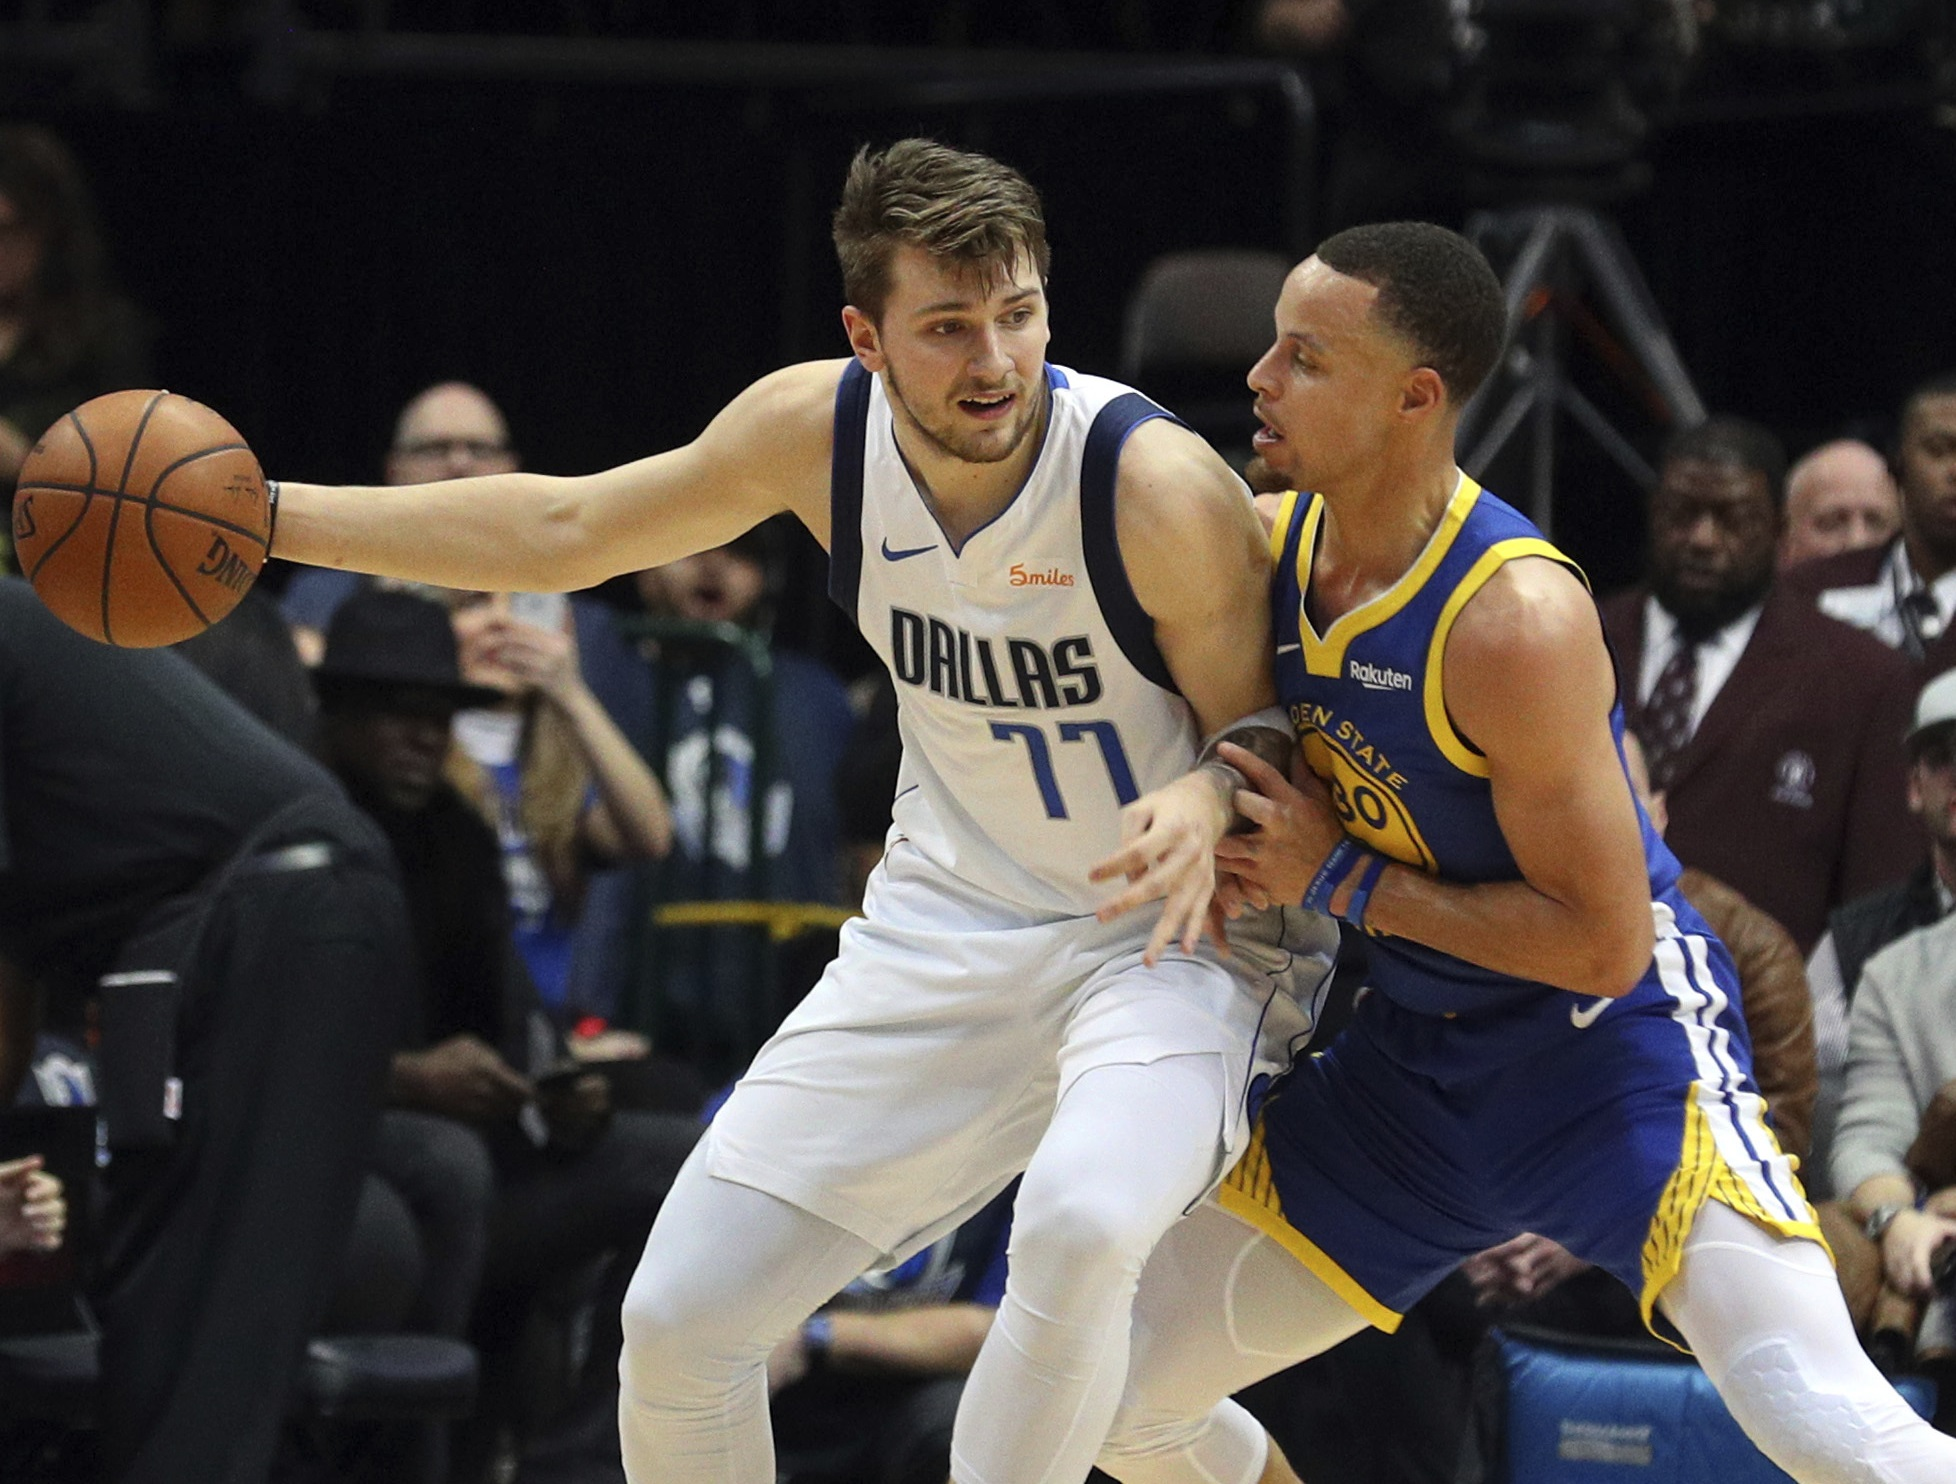 f44c460b4ca8 Dallas Mavericks  A look inside Mavs rookie Luka Doncic s private pre-draft  workout with Steph Curry